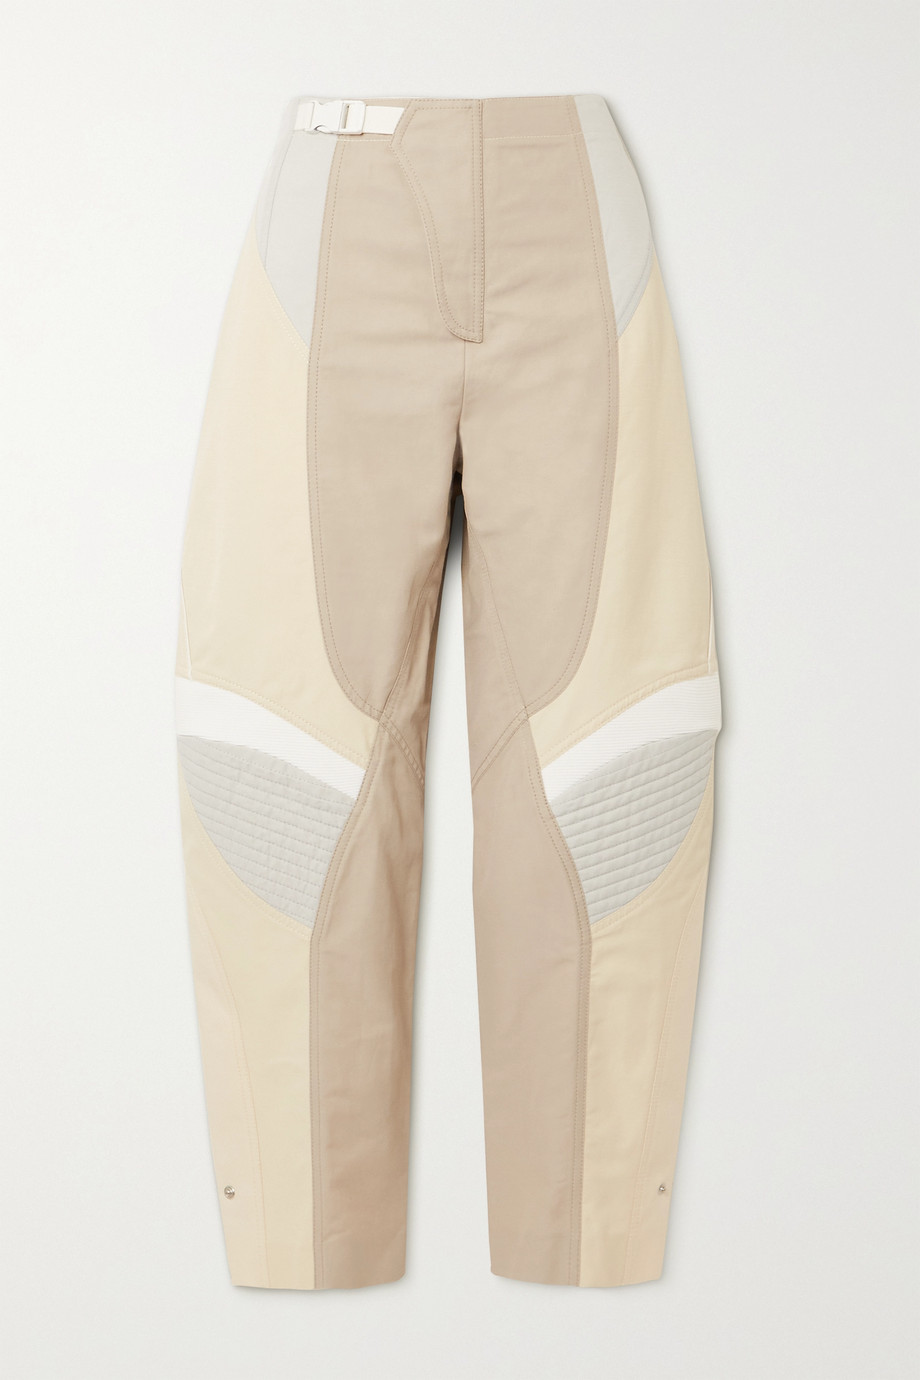 STELLA MCCARTNEY Brooke color-block paneled twill tapered pants